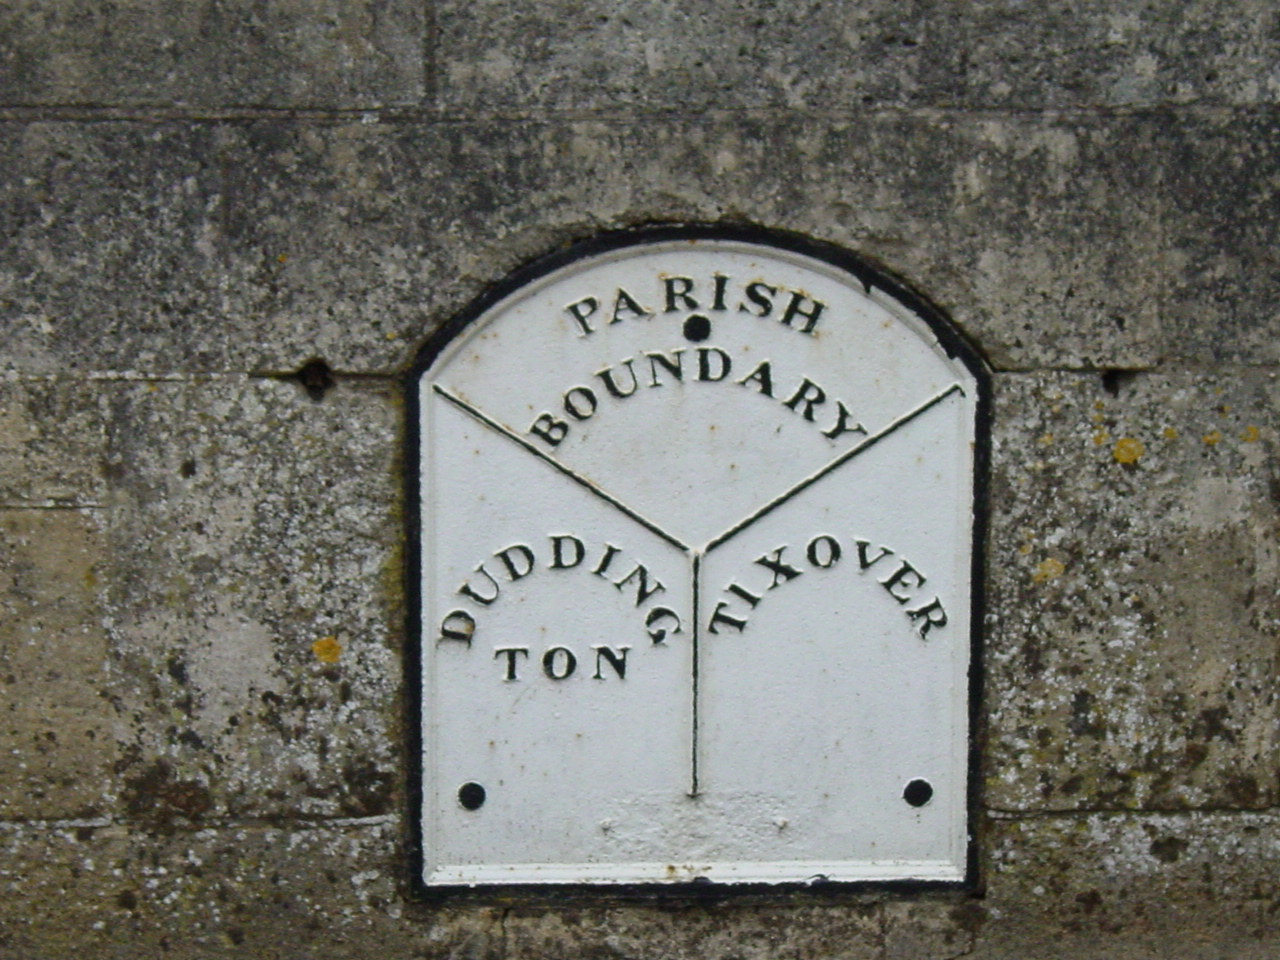 A old parish boundary sign on the border of Duddington, Northamptonshire and Tixover in Rutland (picture from 2005).